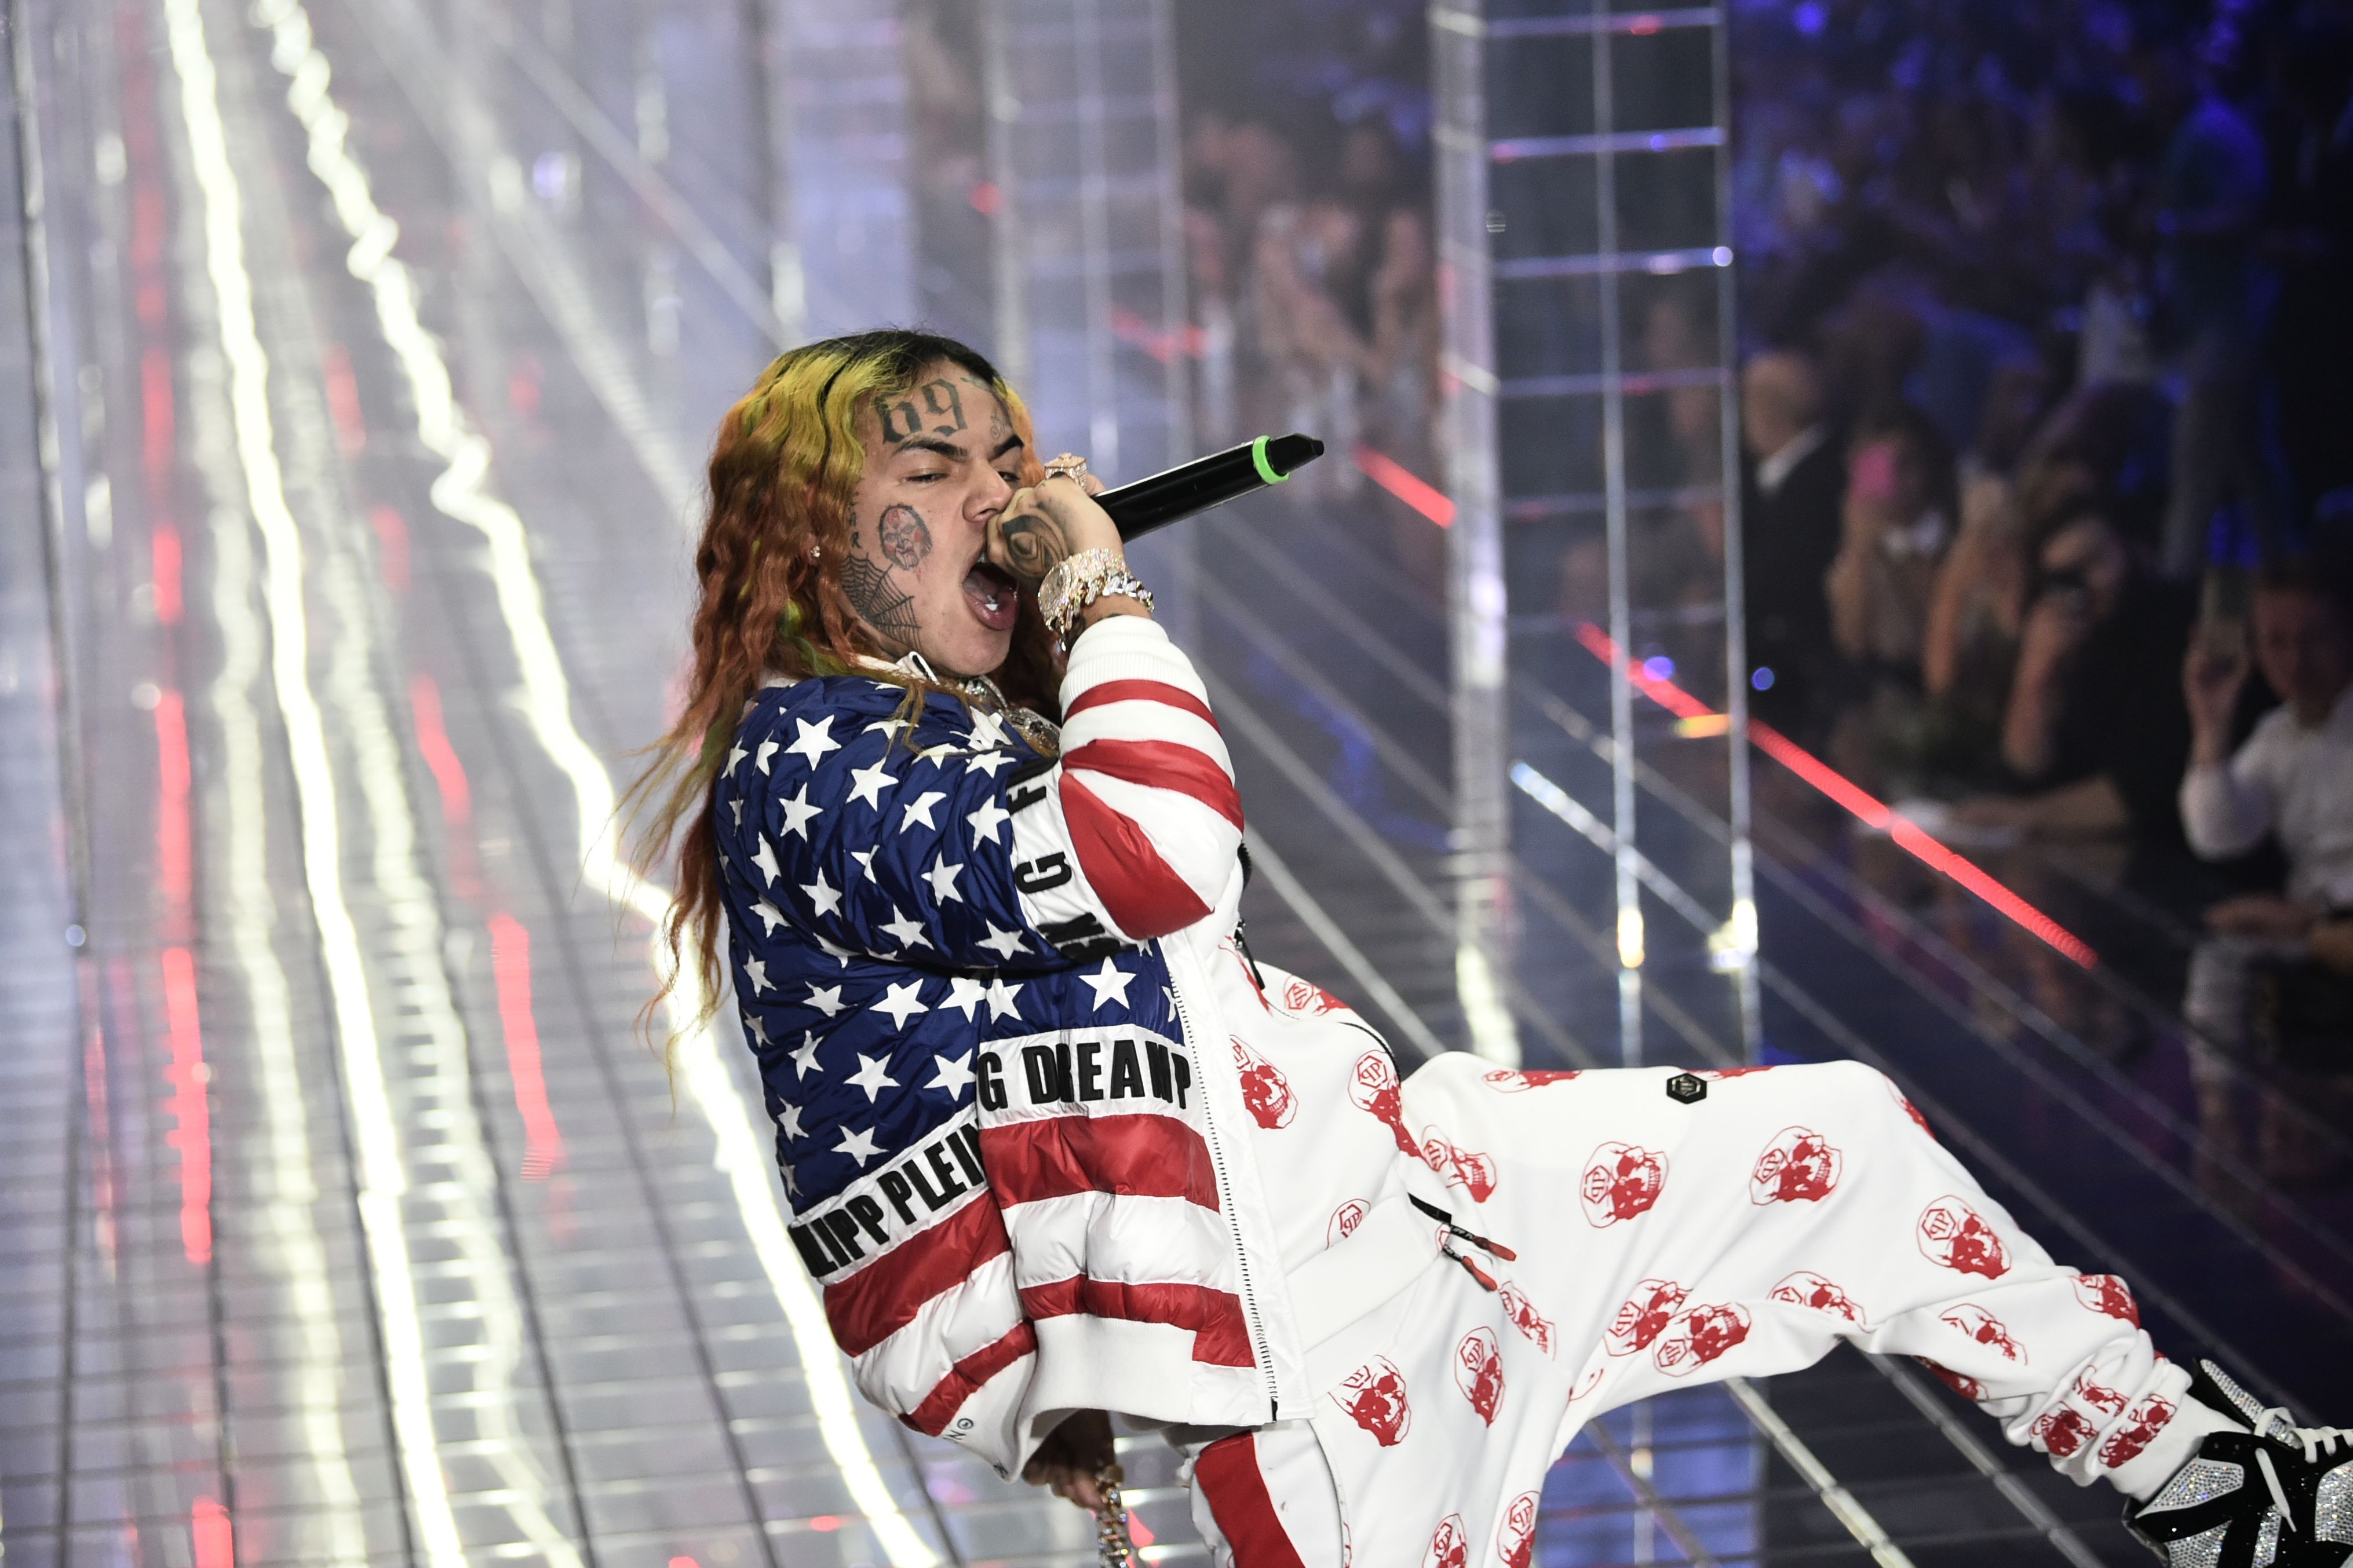 Tekashi 6ix9ine releases new song and video after being freed